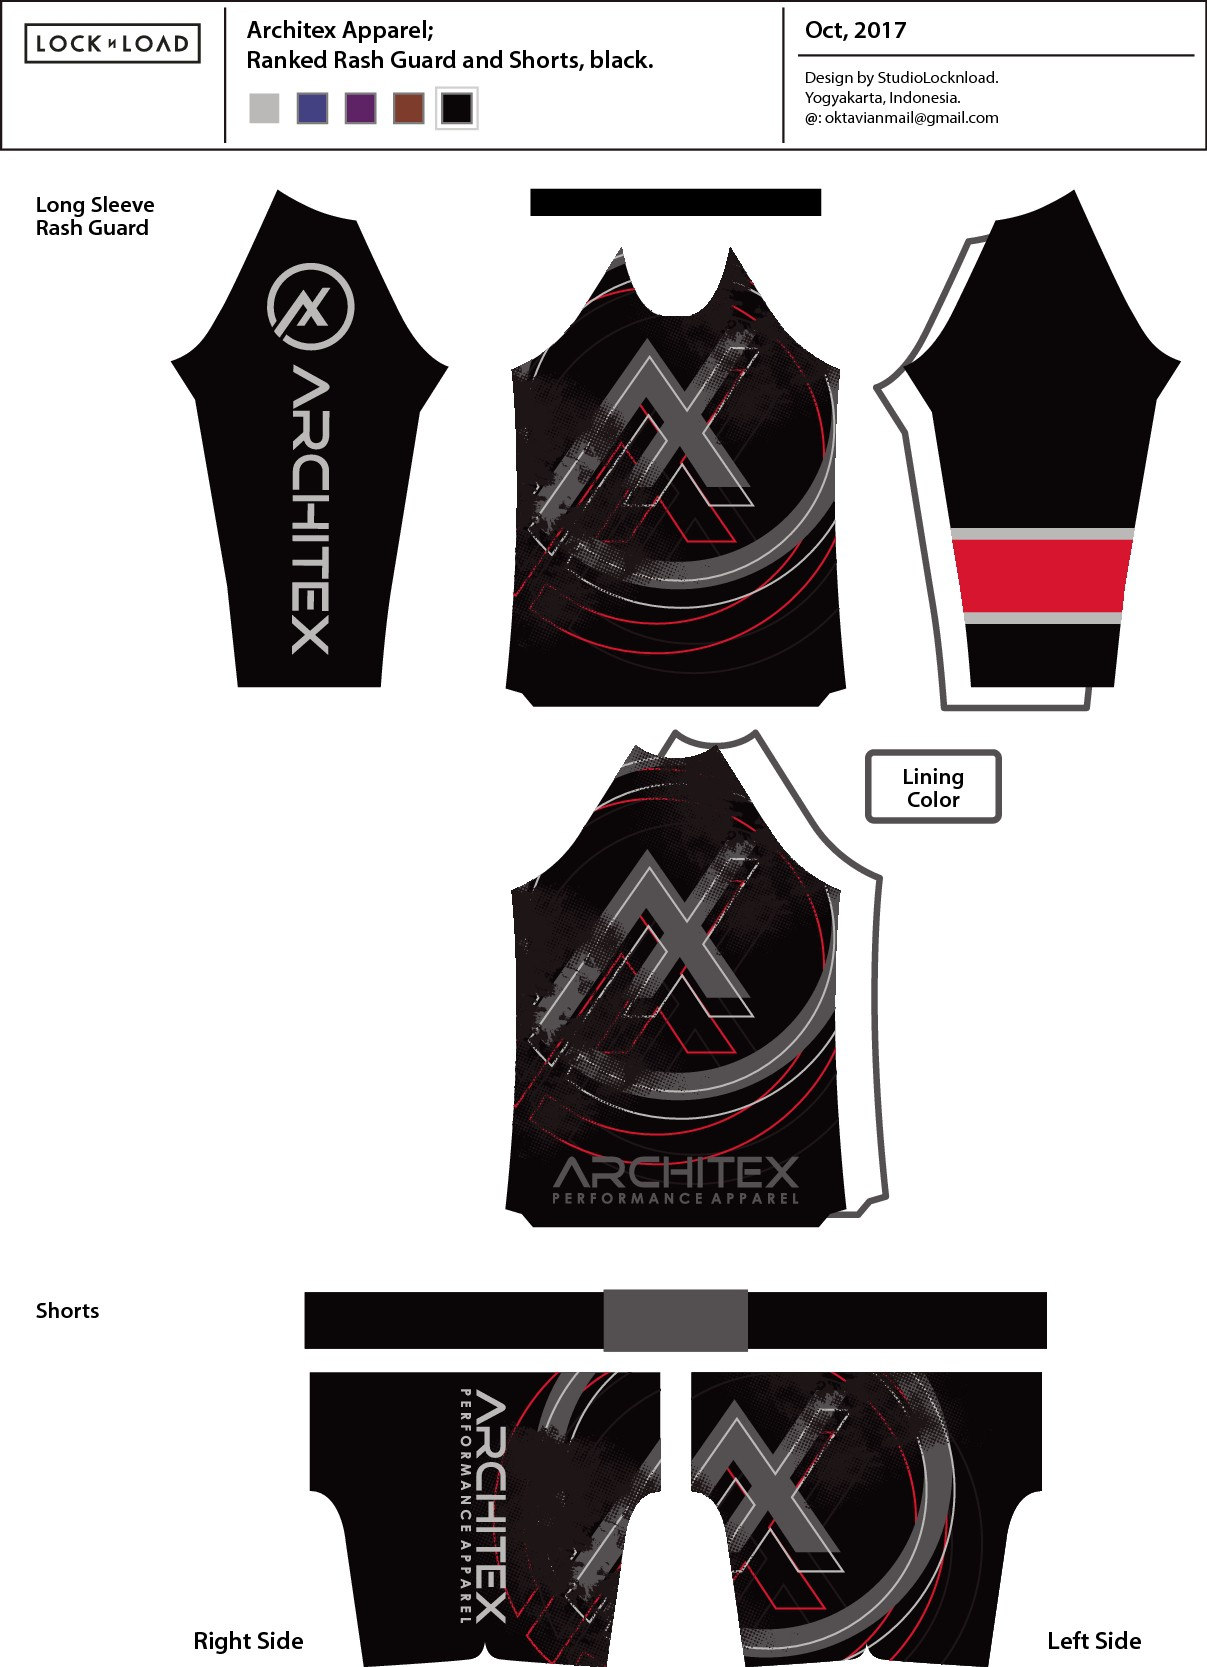 I need a custom rashguard and shorts design for my Jiu-Jitsu brand.